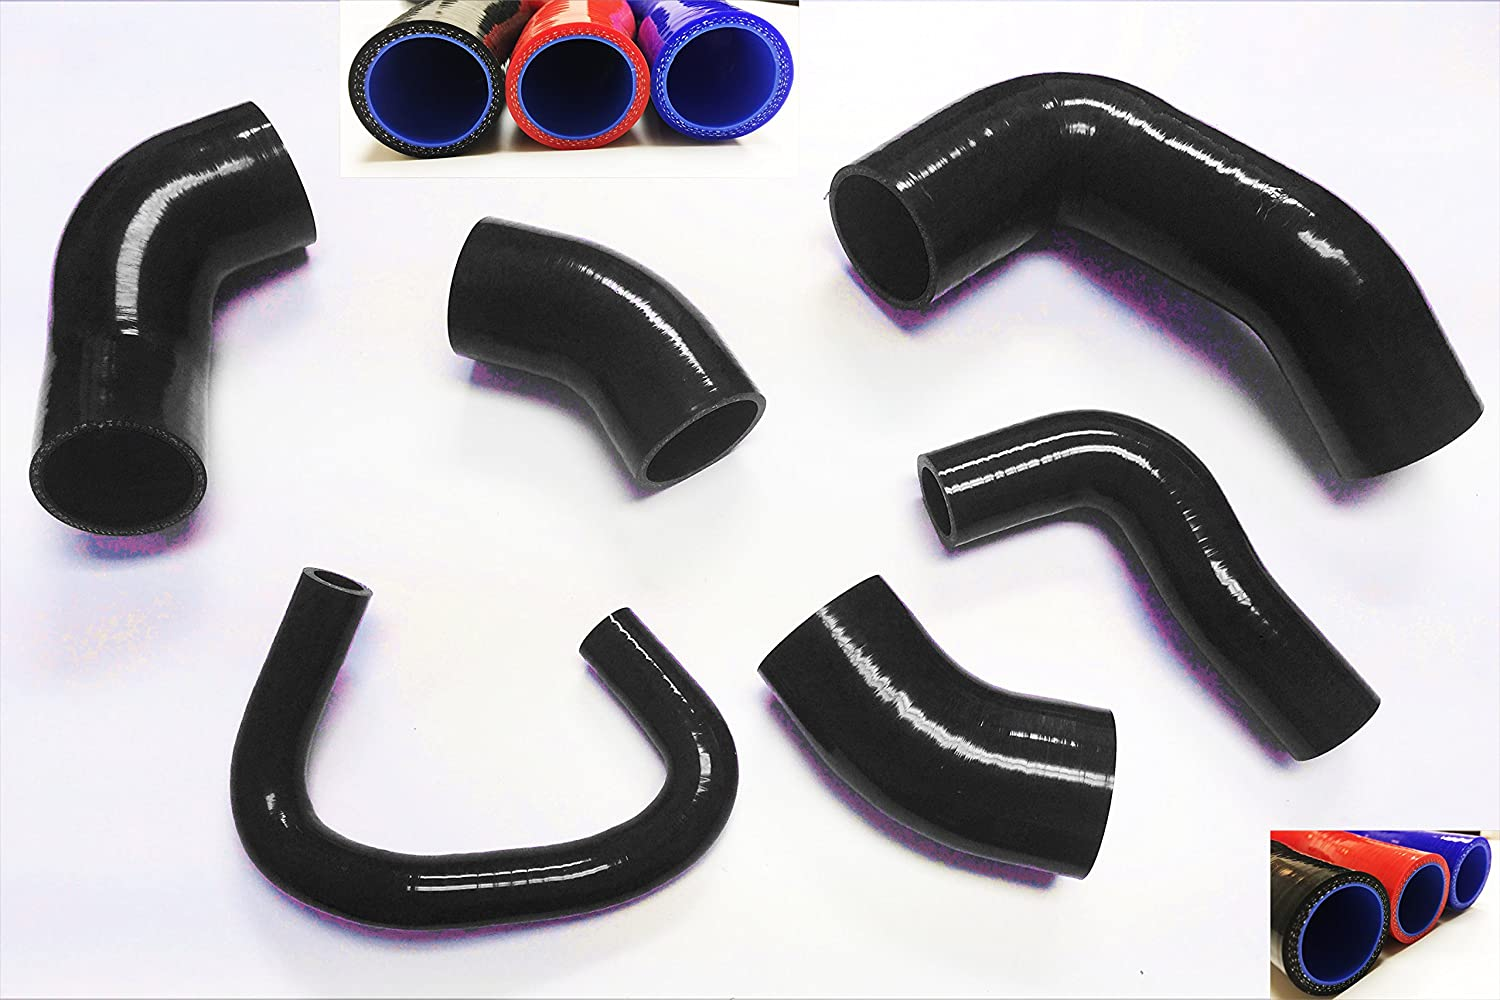 Black 2001 2002 2003 2004 2005 2006 Mitsubishi Lancer EVO 7 8 9 VII VIII IX with 4G63T Turbocharged Engine Silicone Intercooler Turbo Boost Hose Kit 6pcs with Clamps